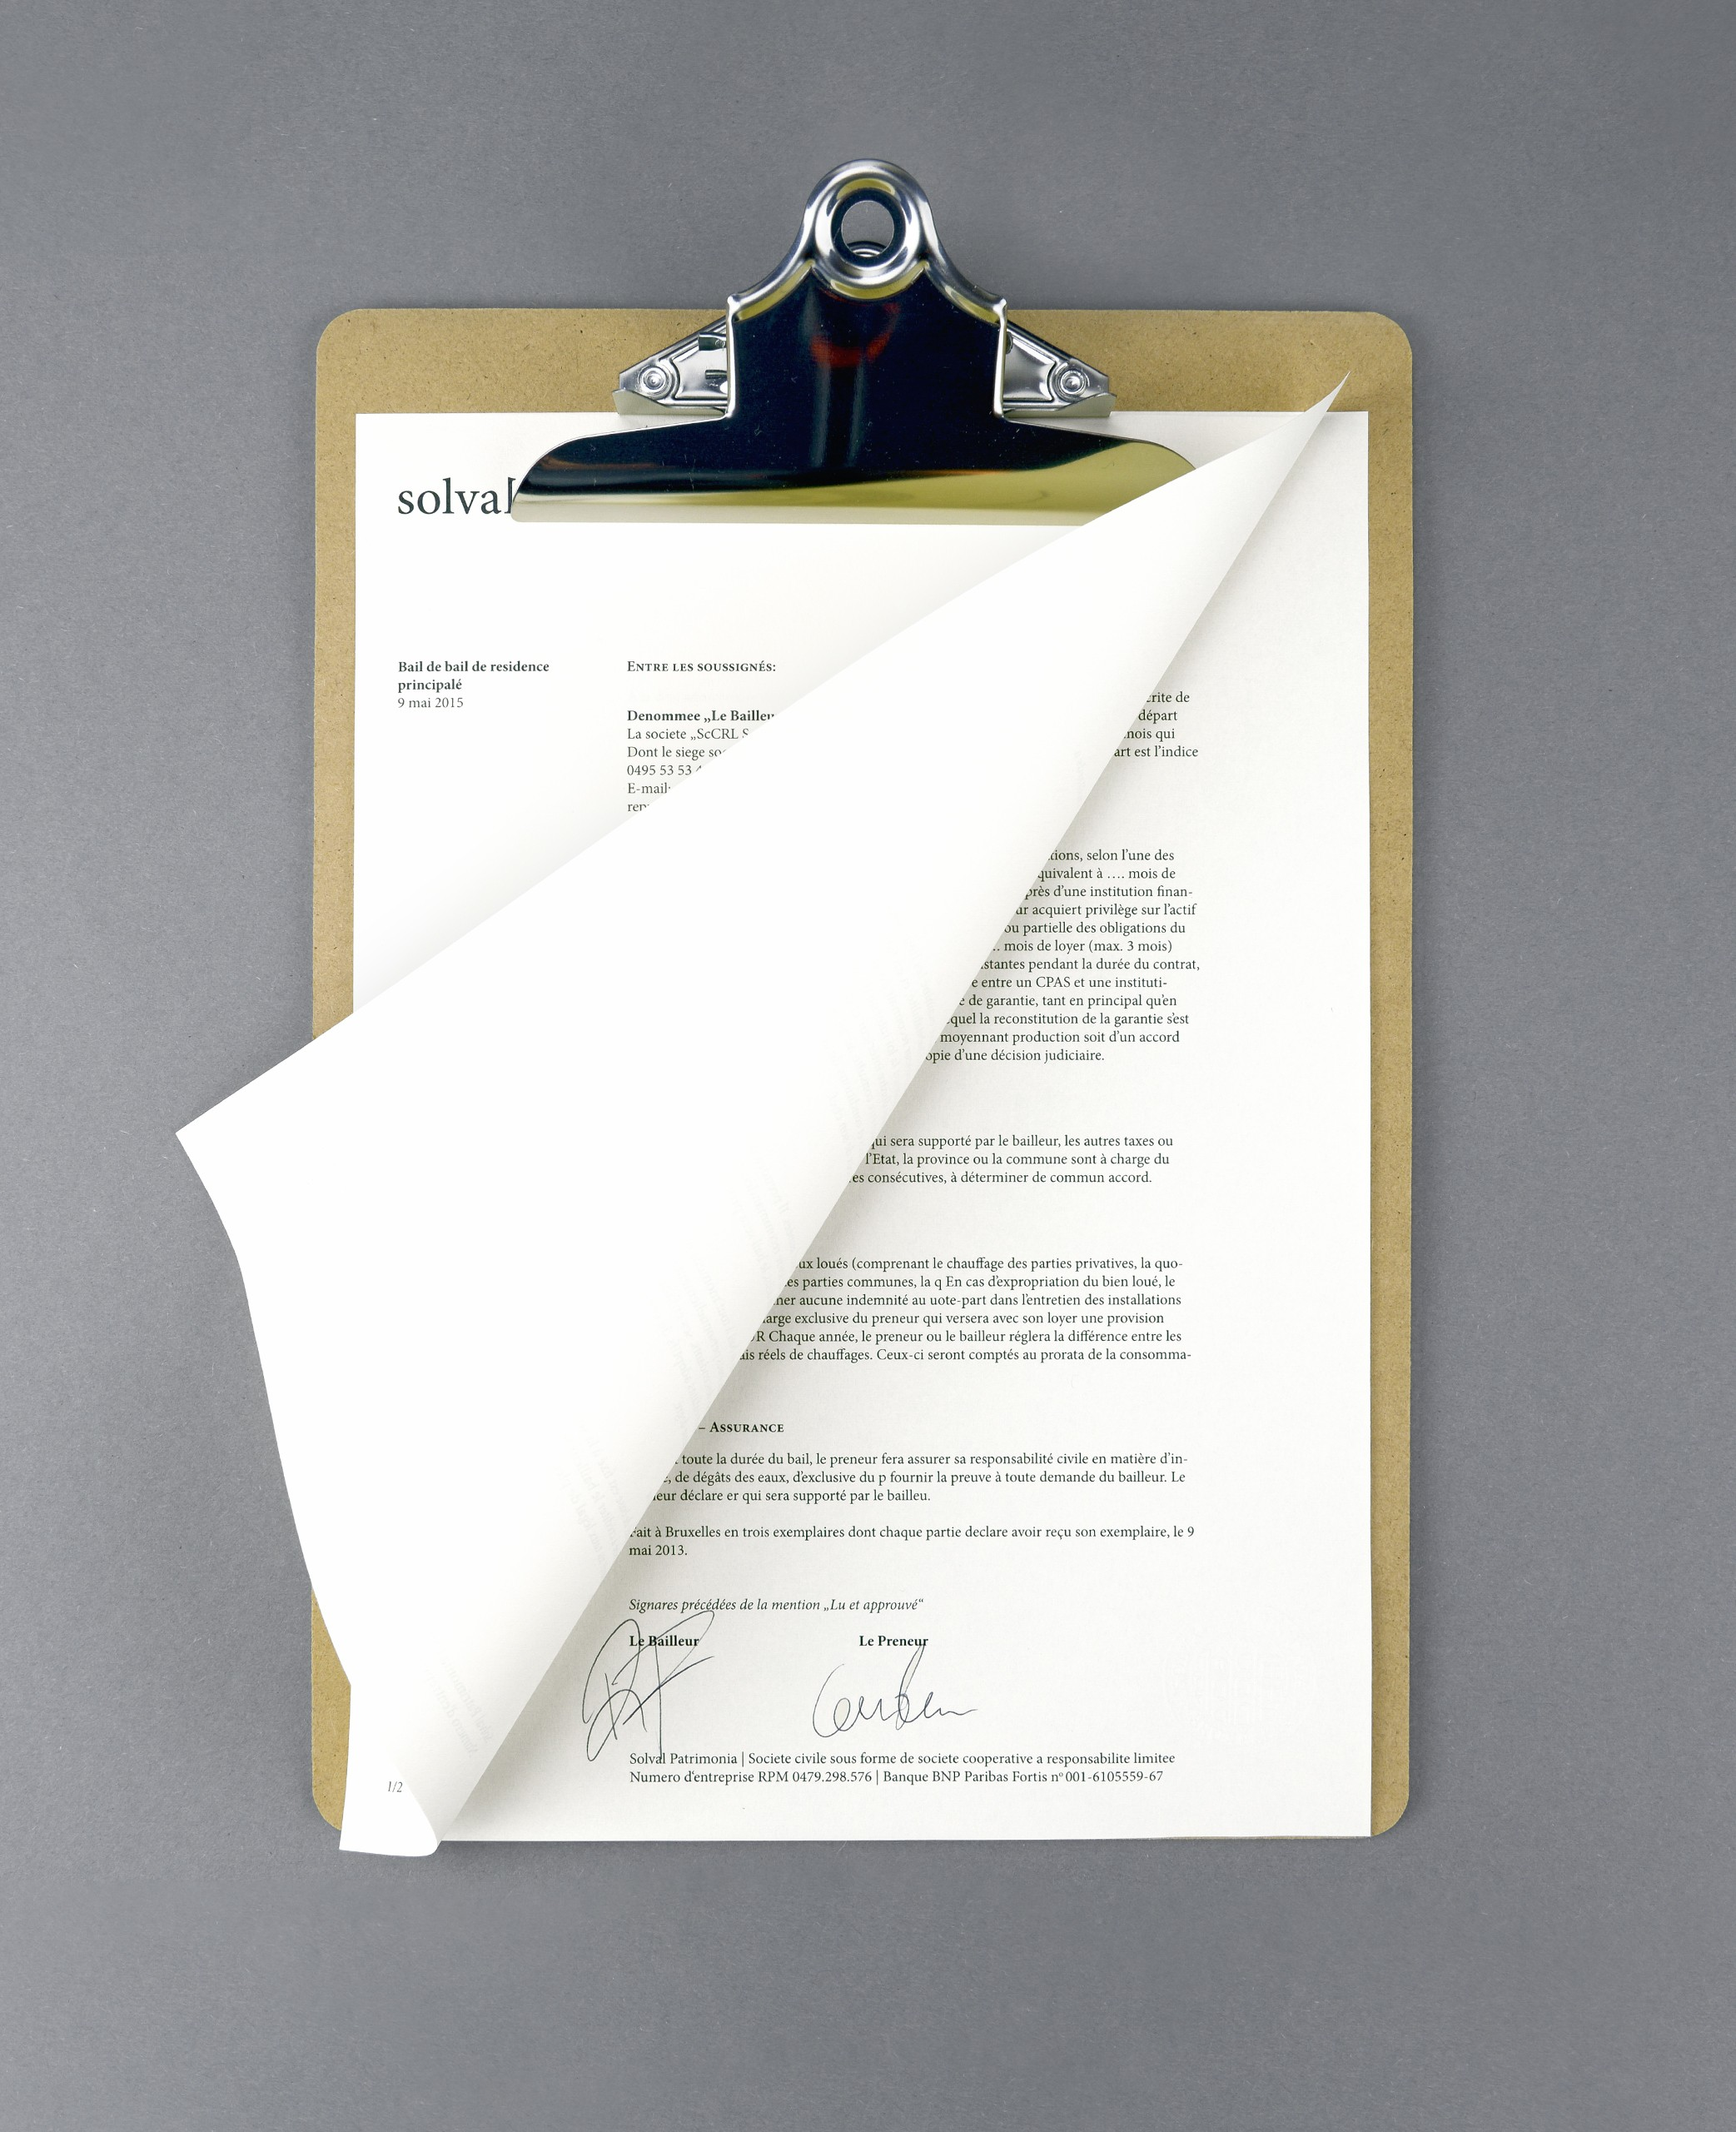 Contract Example Solval